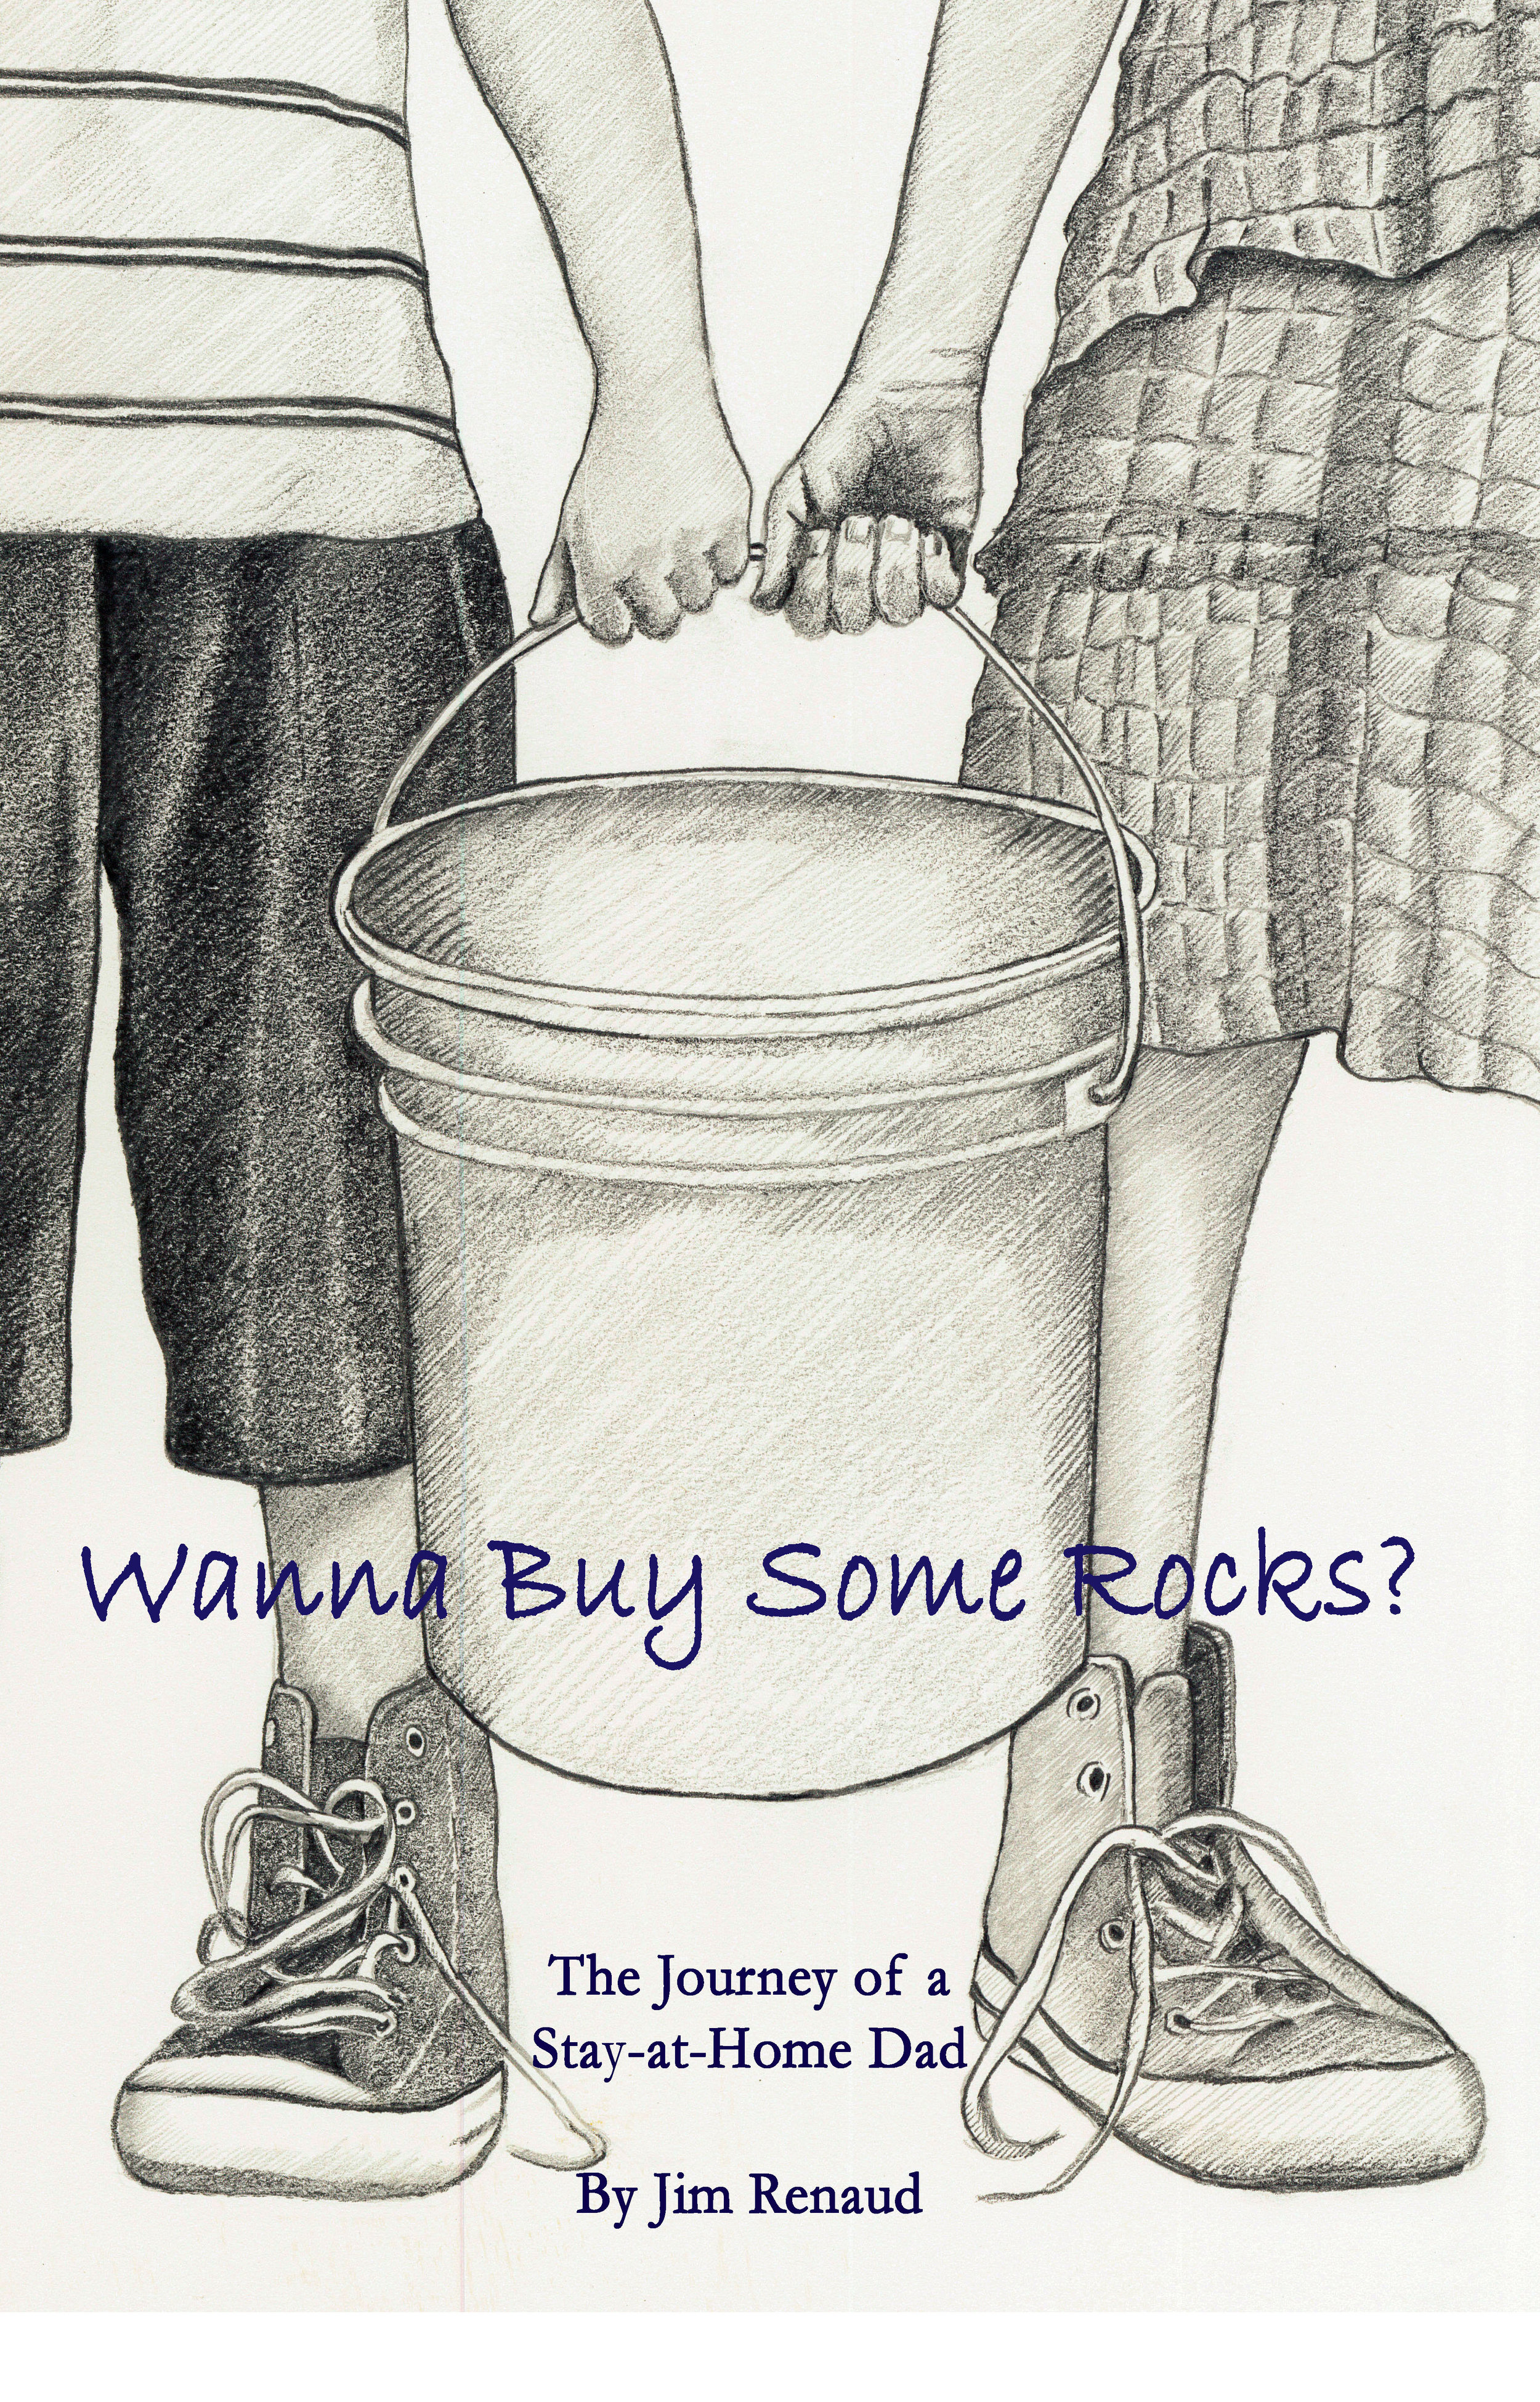 Wanna Buys Some Rocks cover illustration_New_edited-2_1.jpg